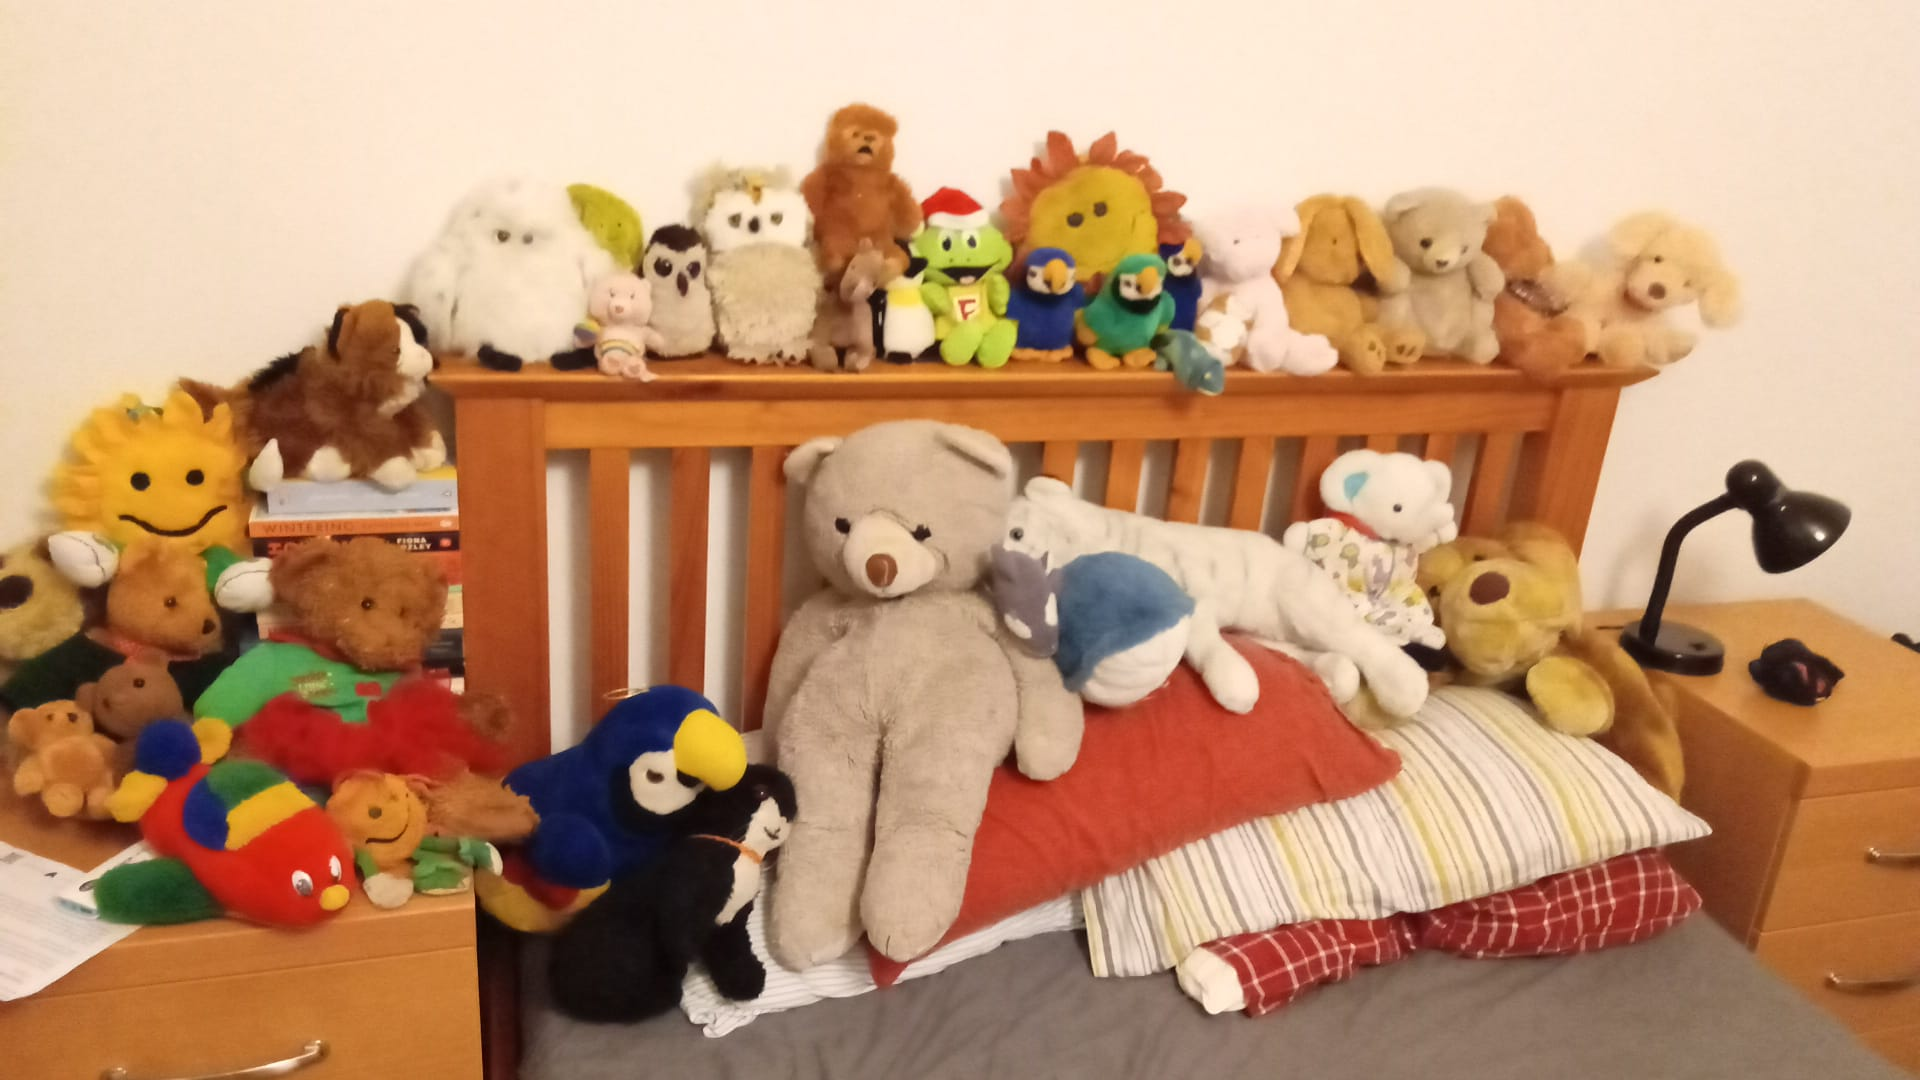 An image showing the front end of Jorik's bed, with a variety of cuddly toys along the headboard and on top of the pillows. It looks pretty dang comfortable.